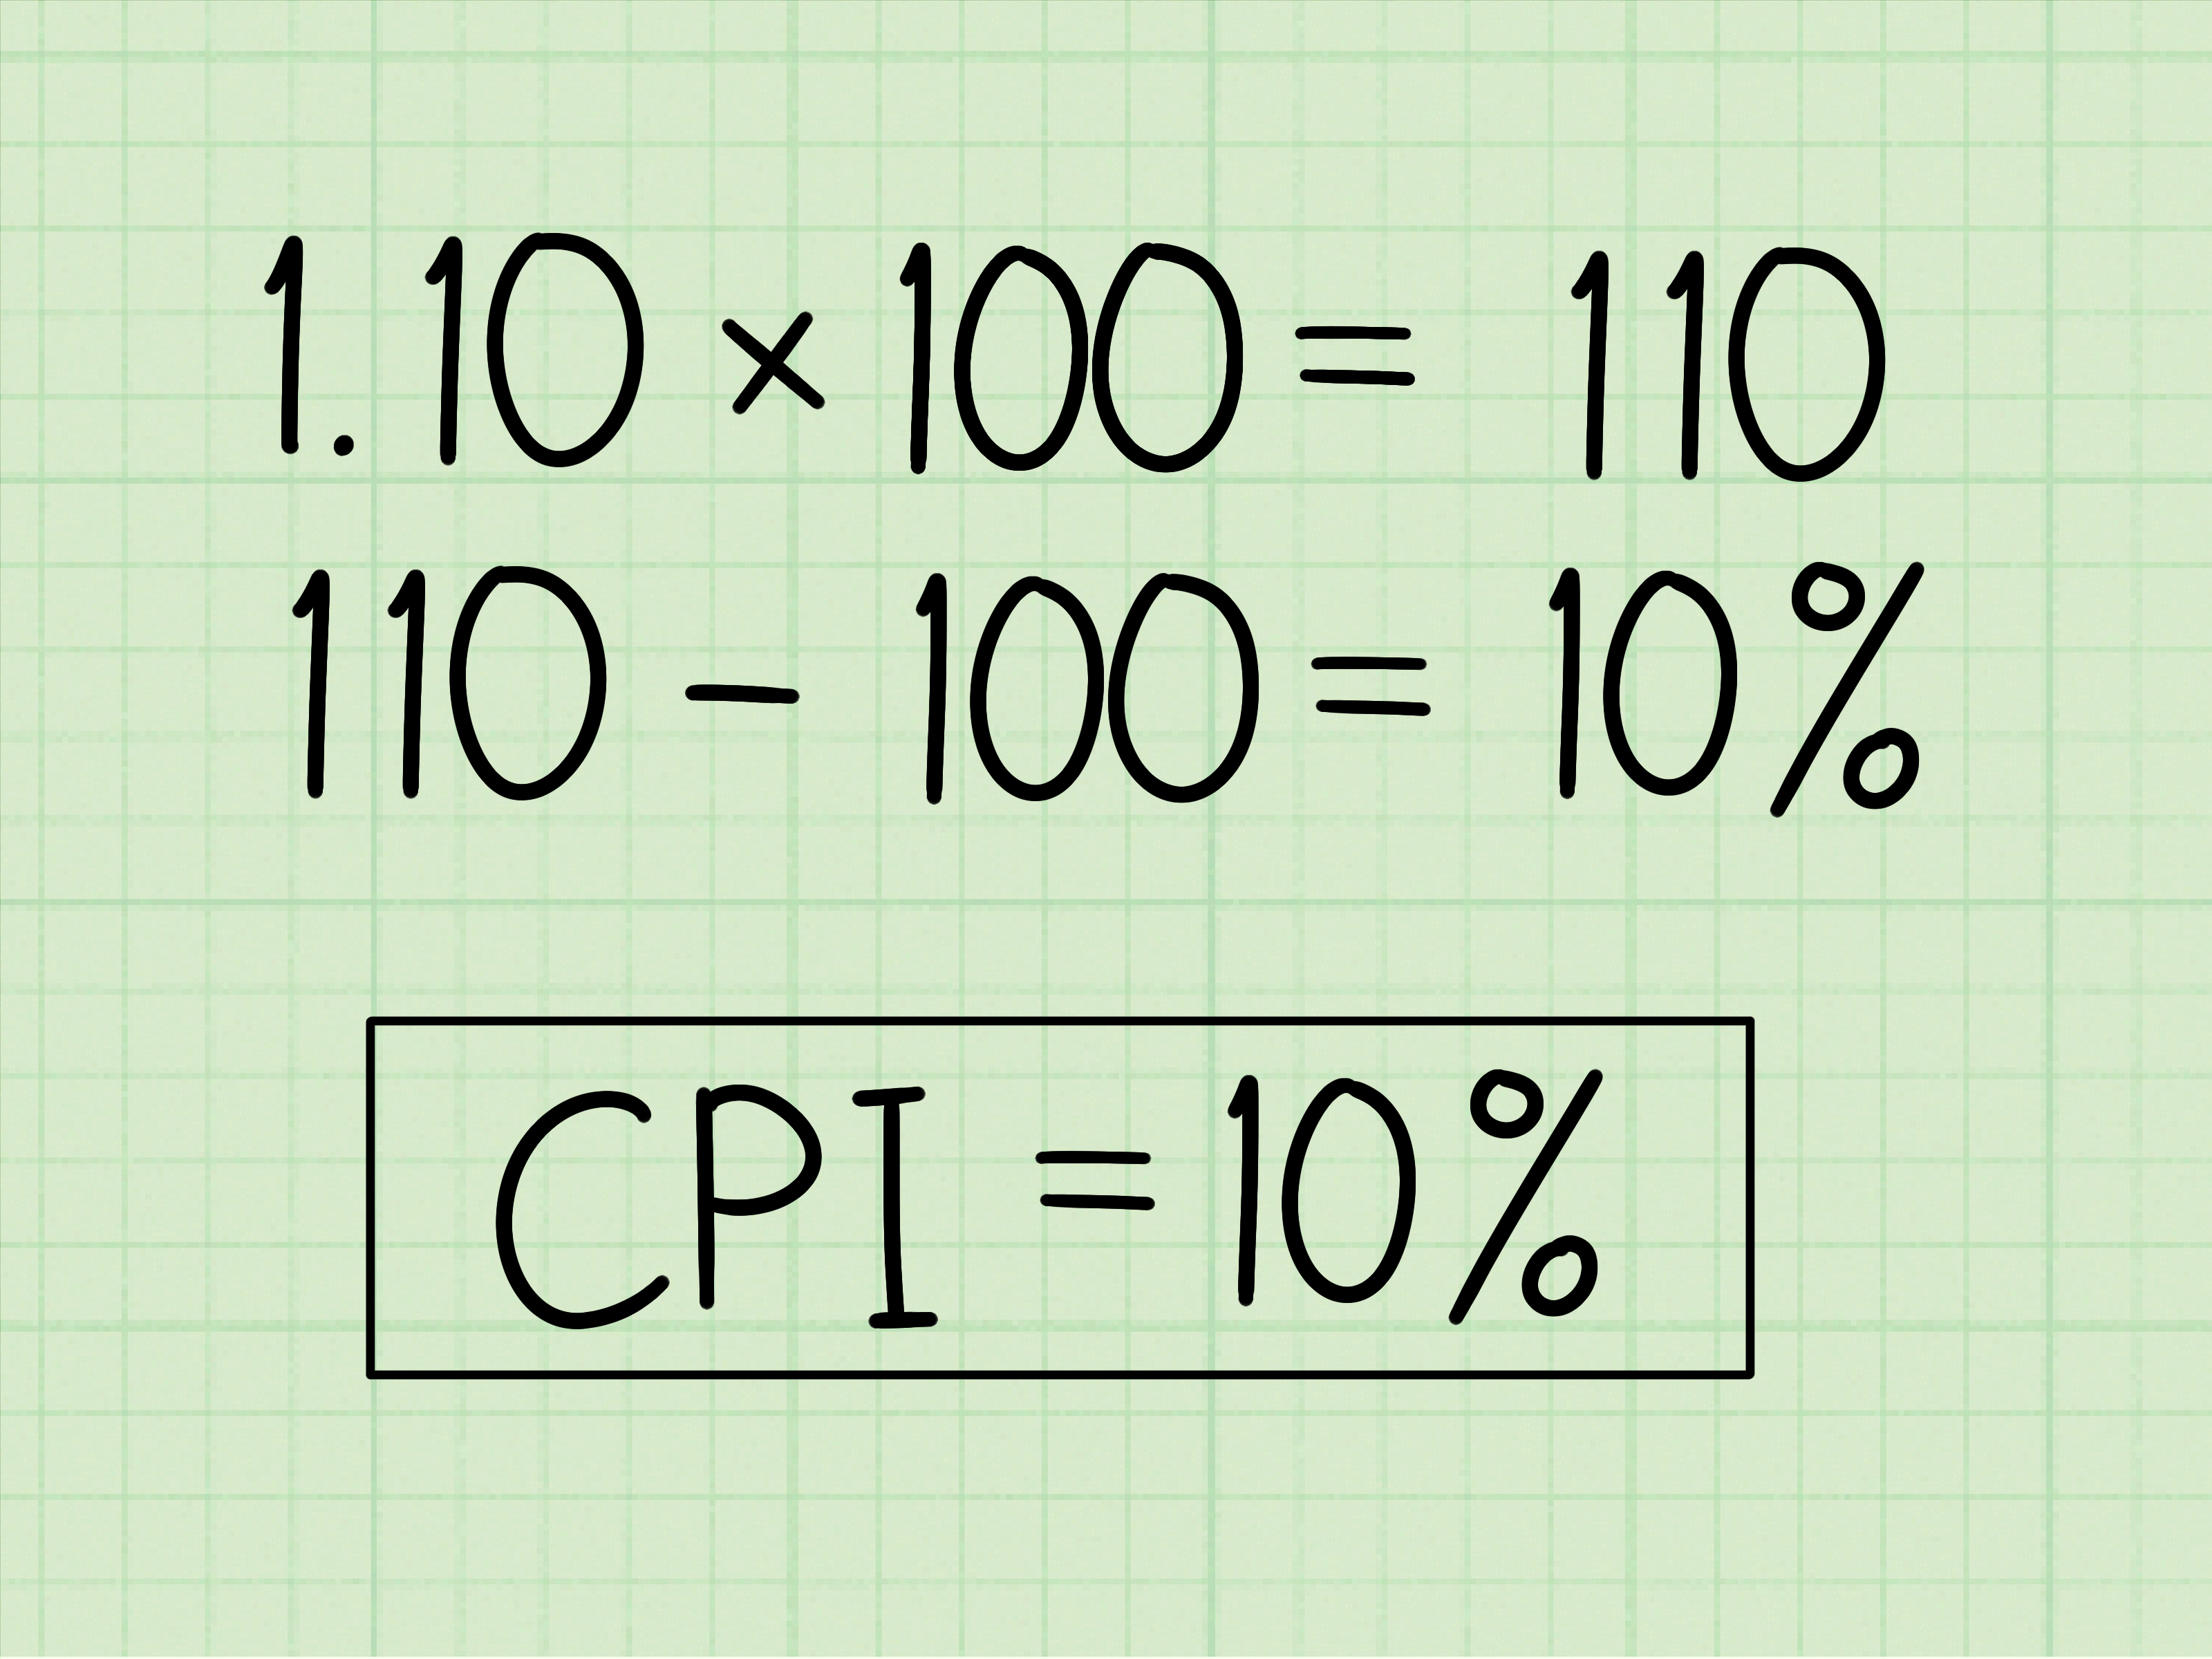 Ppi Interest Calculator Spreadsheet Pertaining To 2 Easy Ways To Calculate Cpi With Pictures  Wikihow